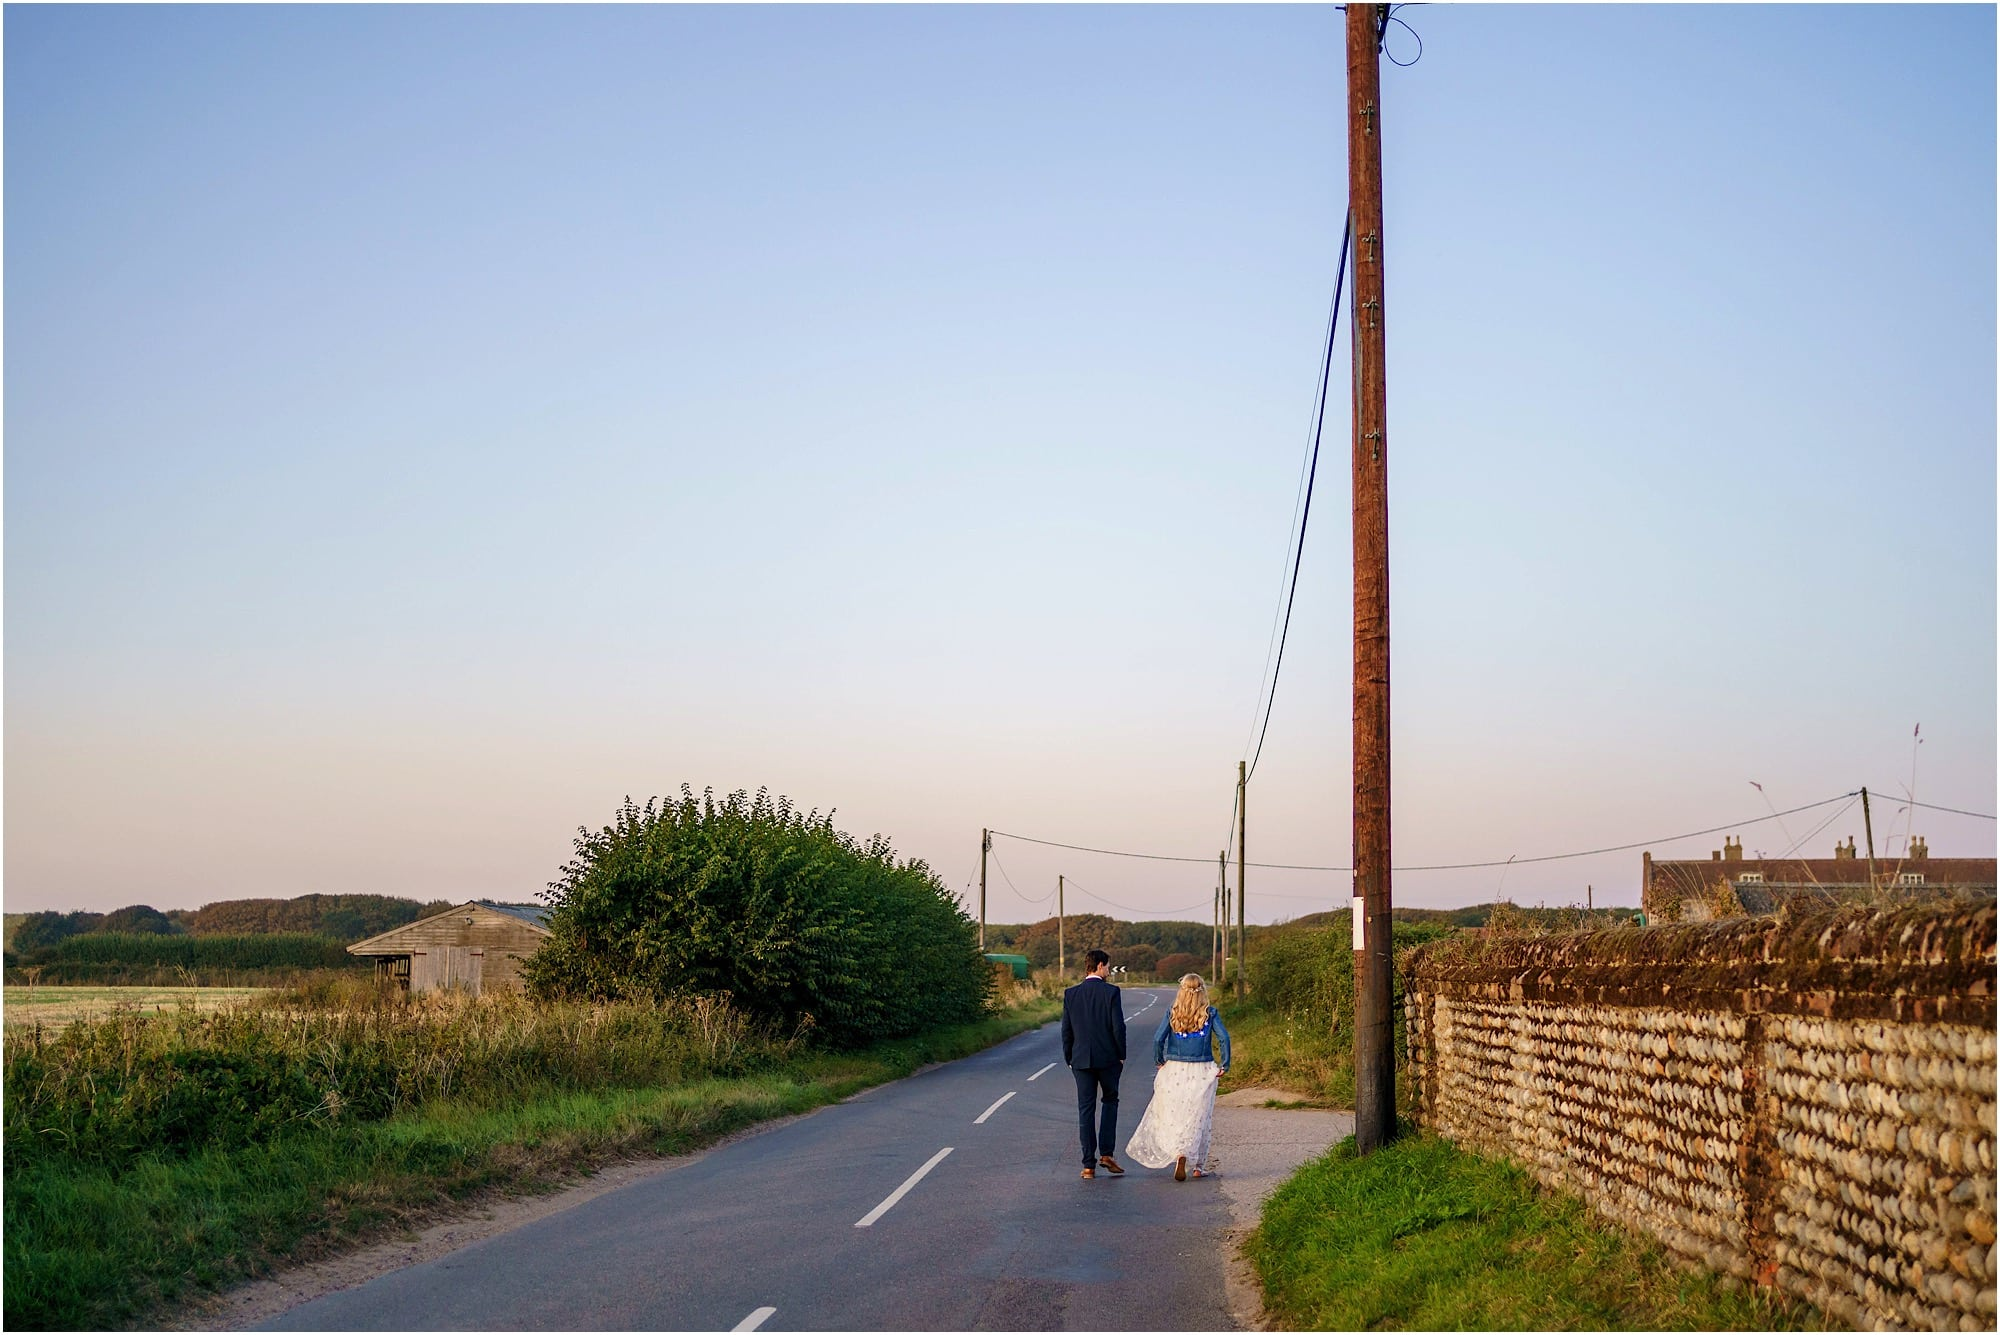 walking down the road to the beech